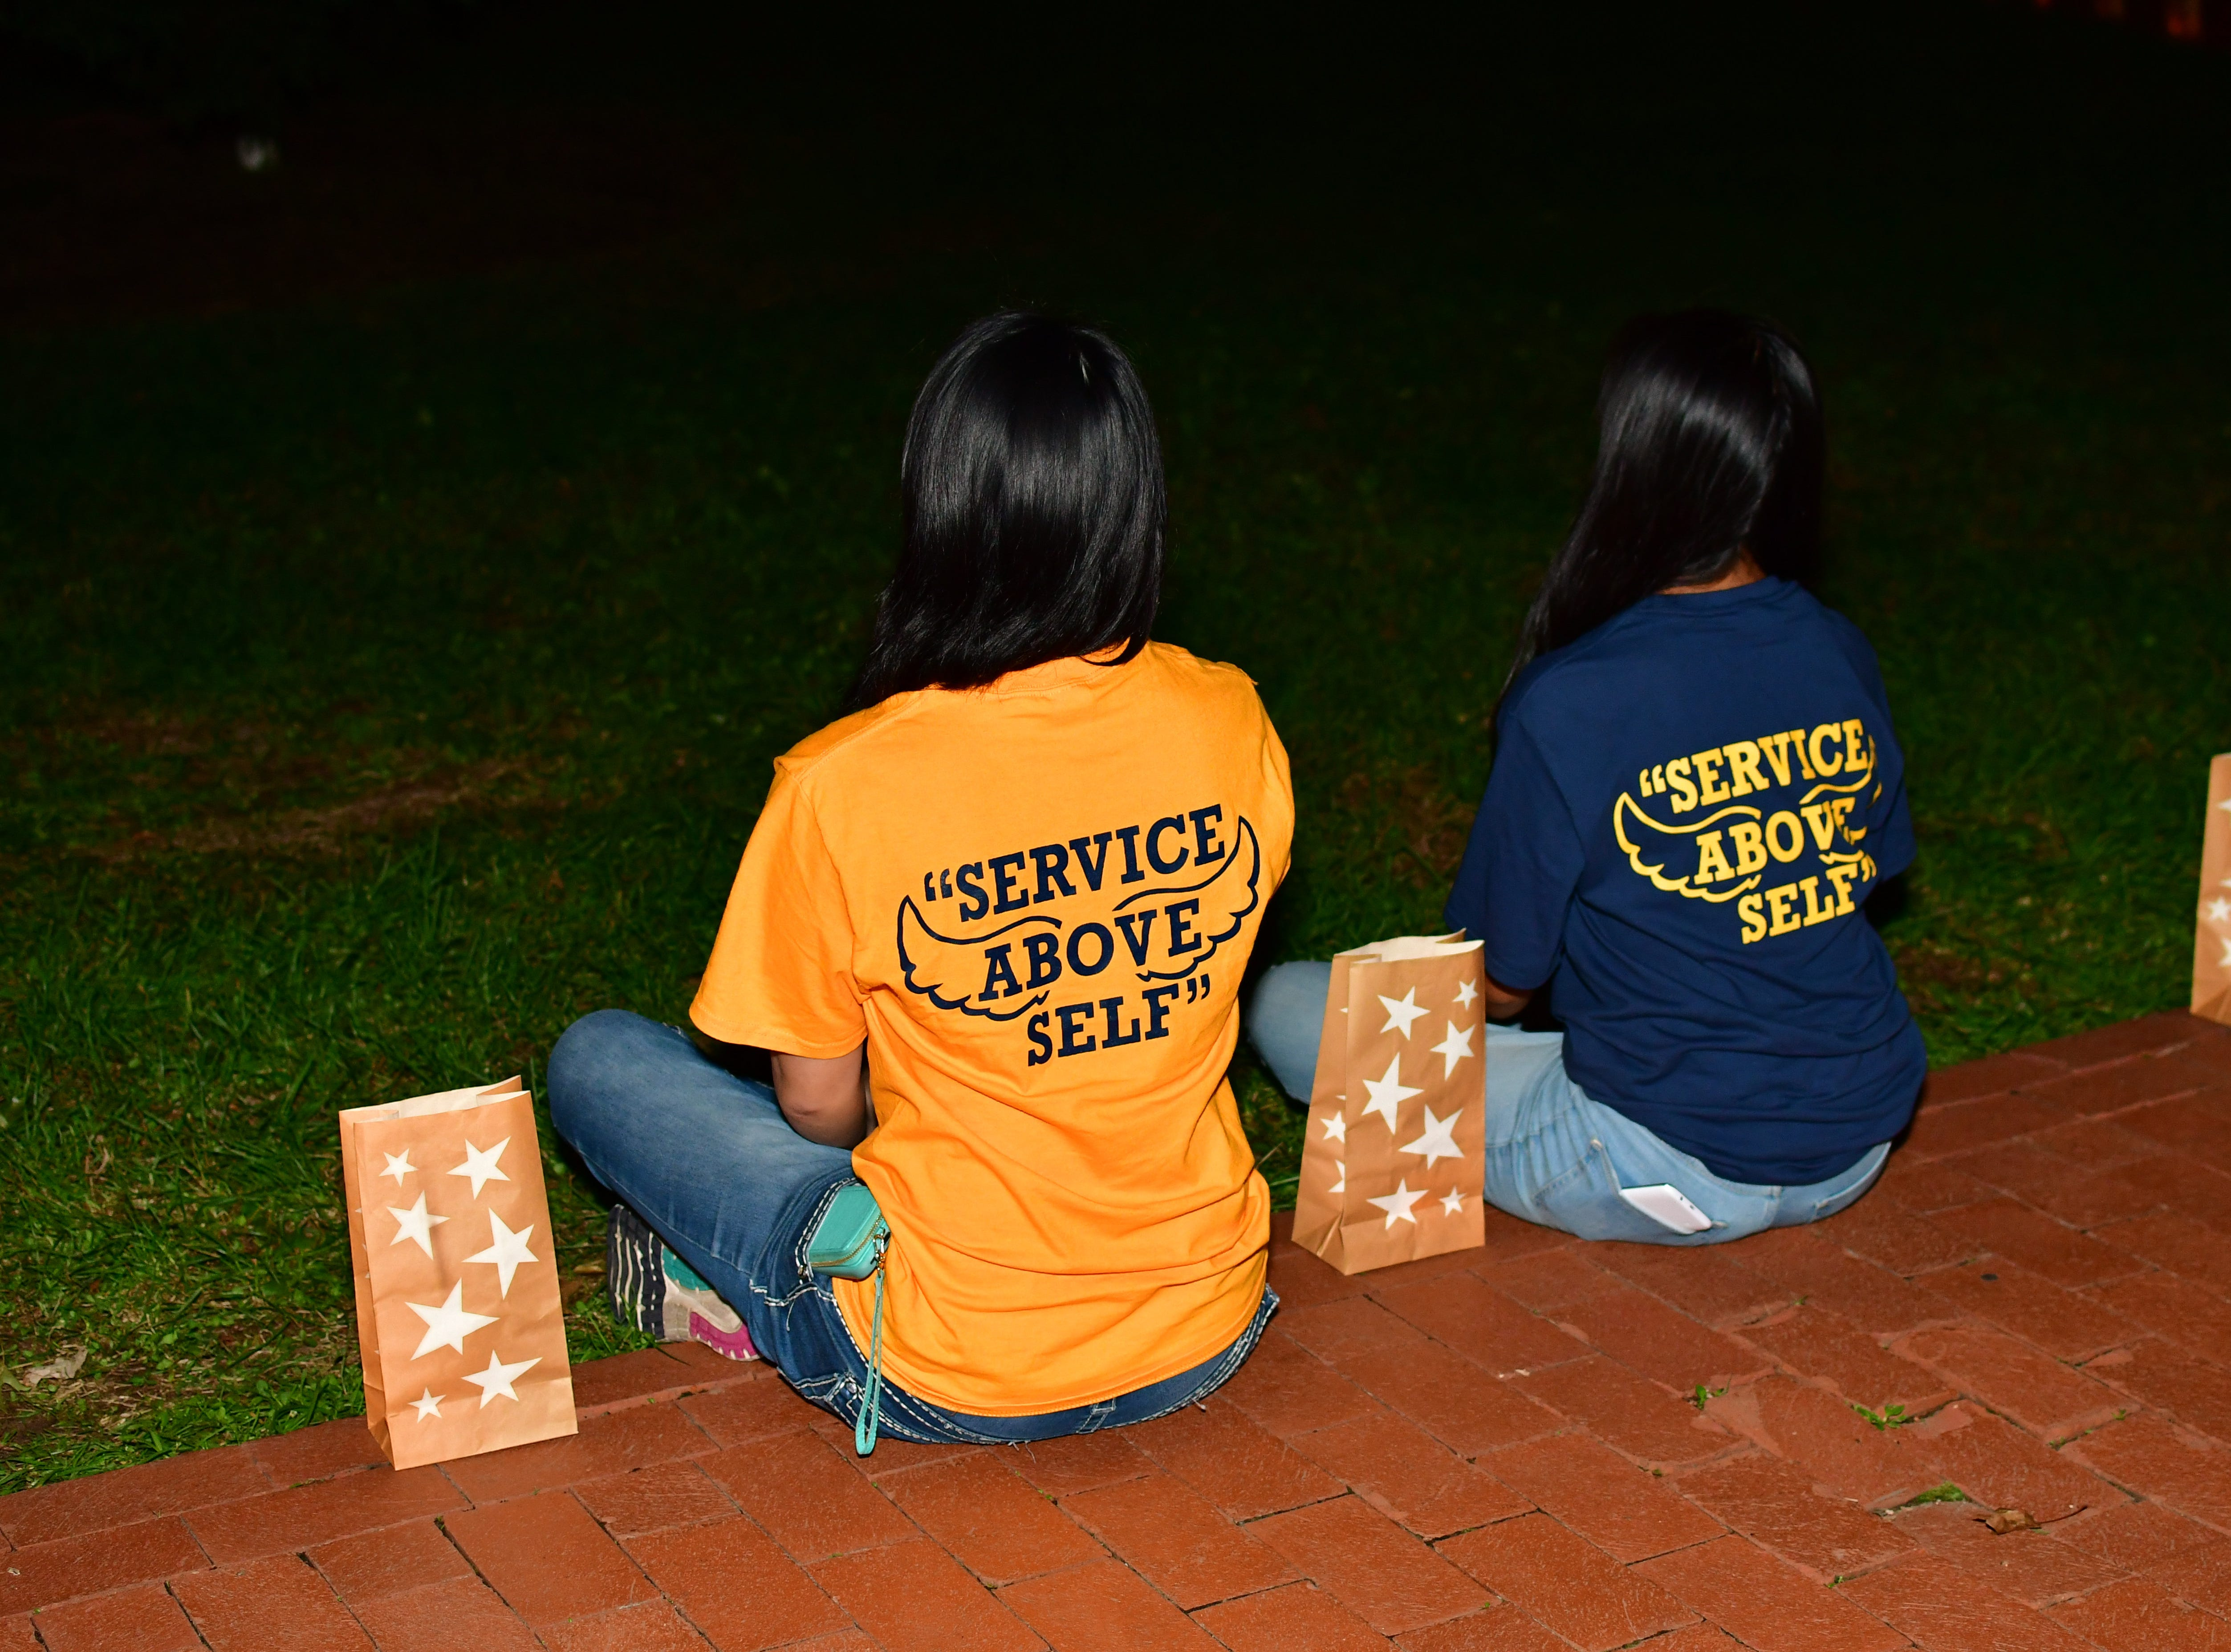 Vanessa Cheng, left, and Daisy Torres, right.  The Gold Star Mother's Day Committee sponsored its eighth annual event commemorating Gold Star Mother's Day on Sept. 30, at Van Neste Park, Ridgewood. After a short ceremony, hundreds of luminaries were lit to honor Gold Star Mothers (moms who had lost sons and daughters to the war) and their families.